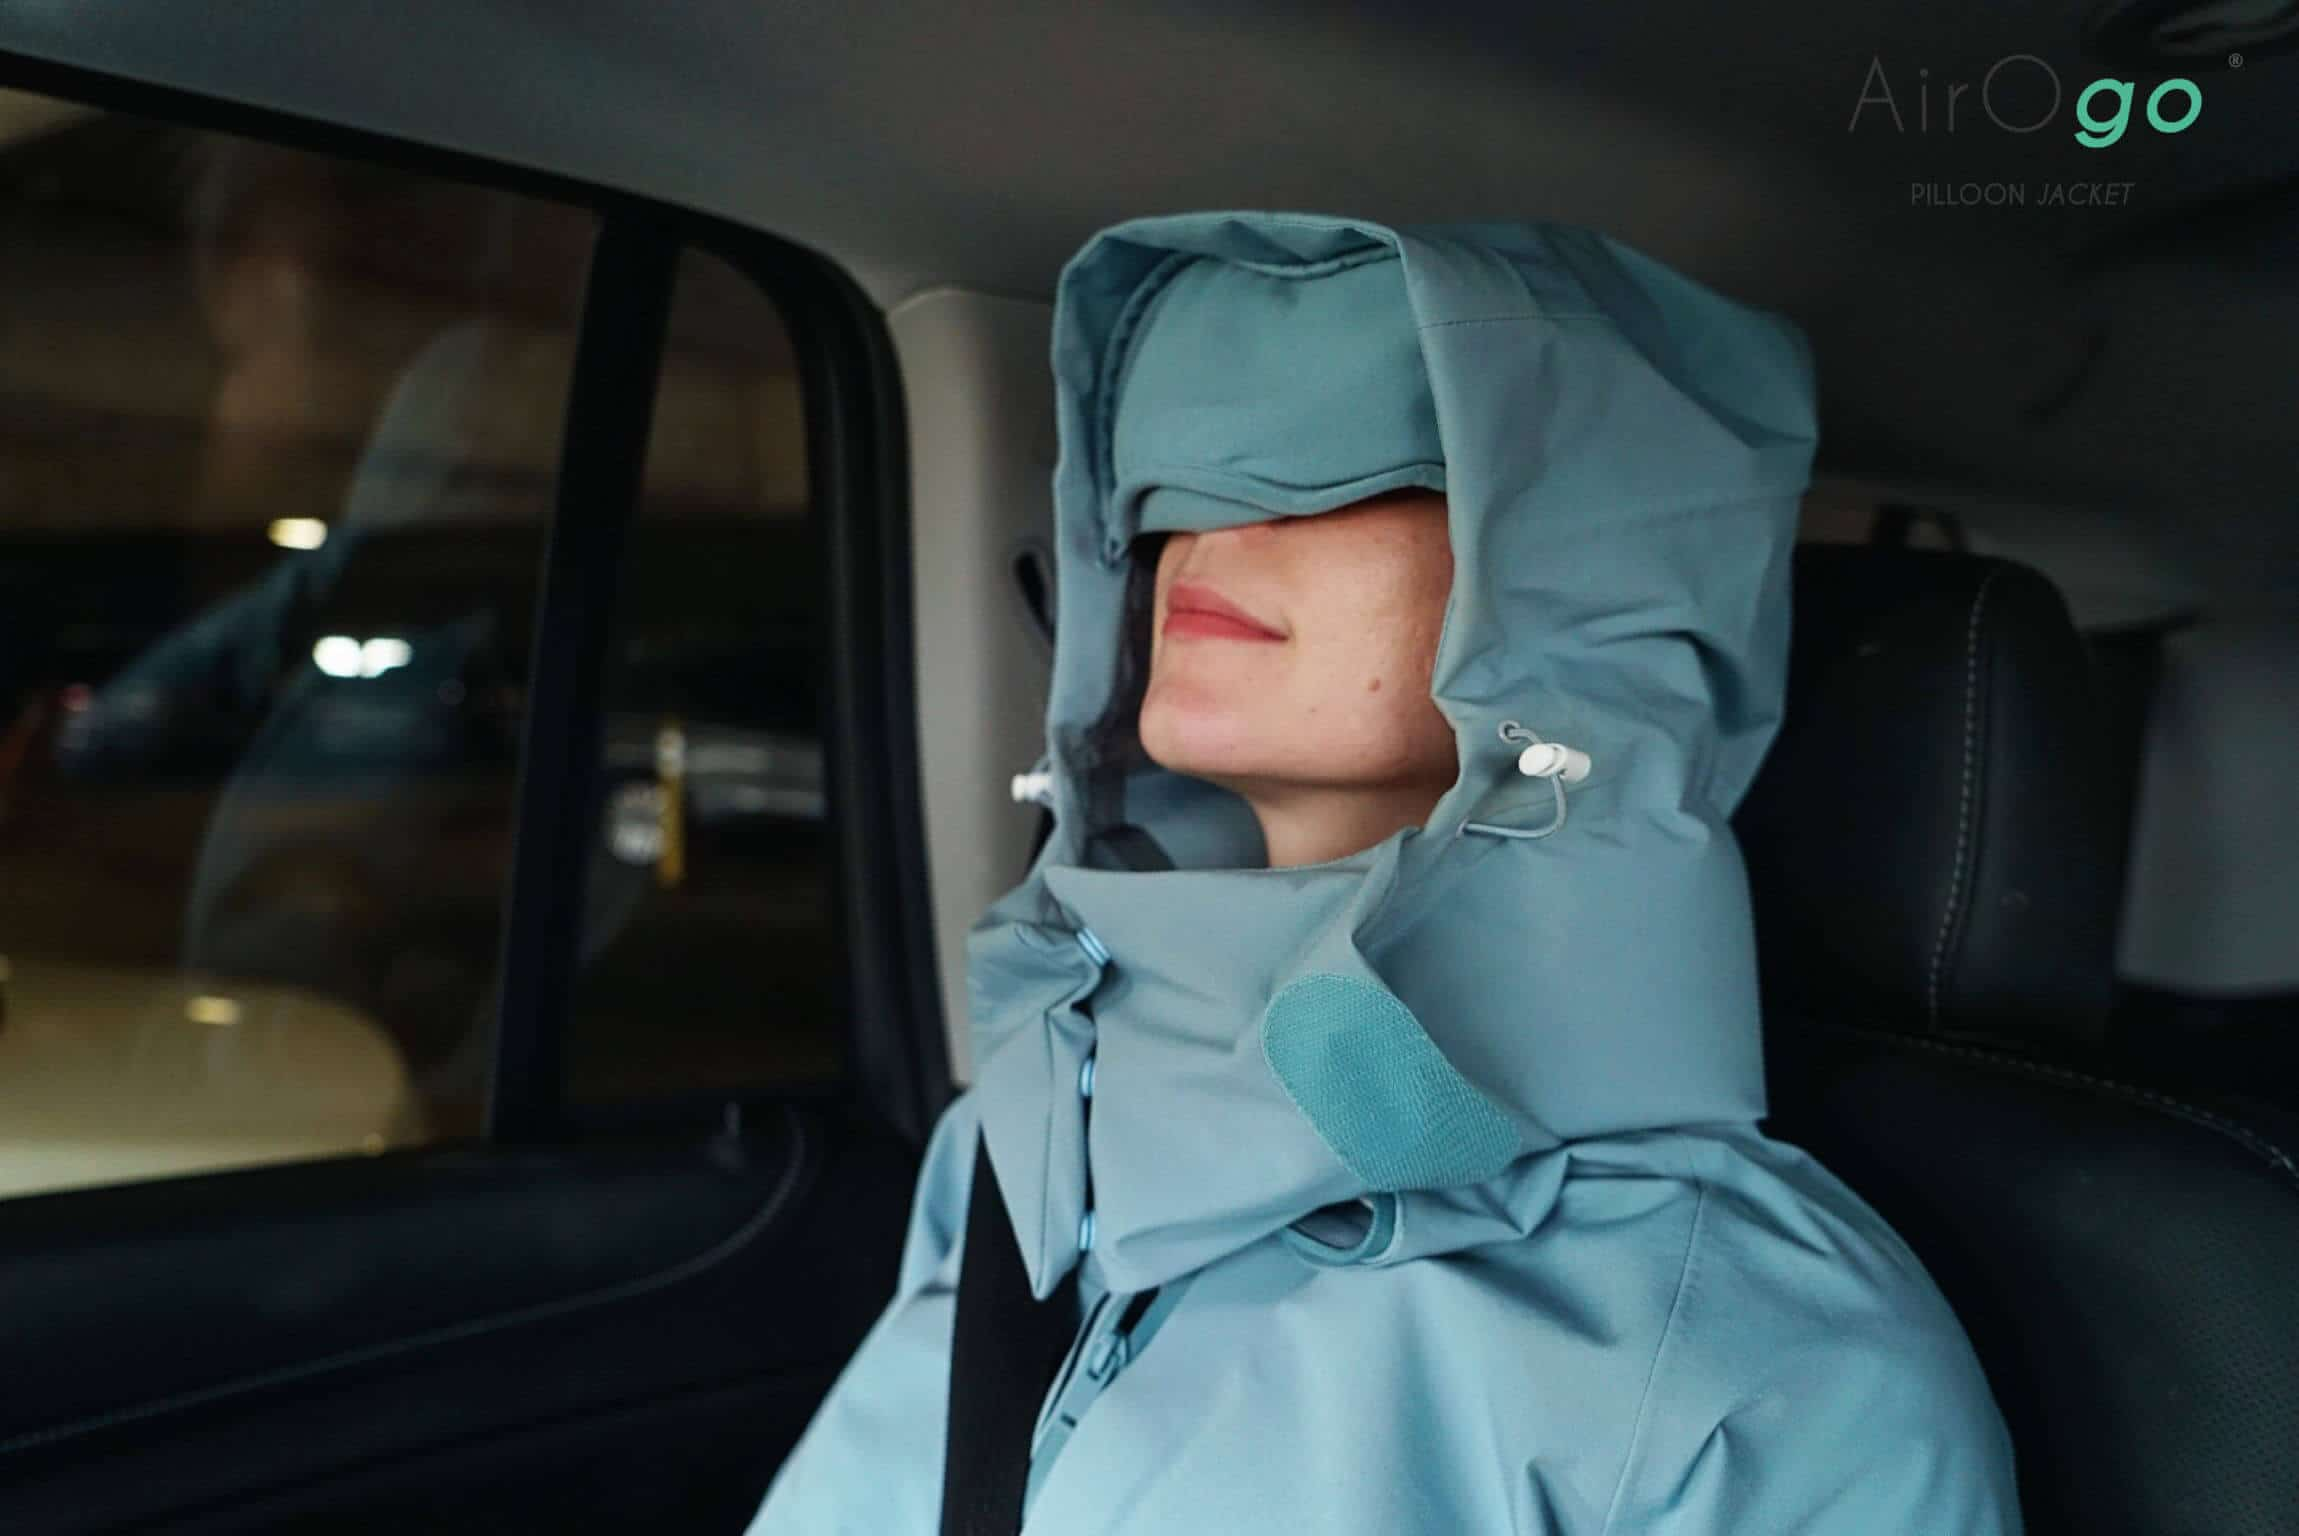 Travel smarter and sleep anywhere with the Pilloon Jacket